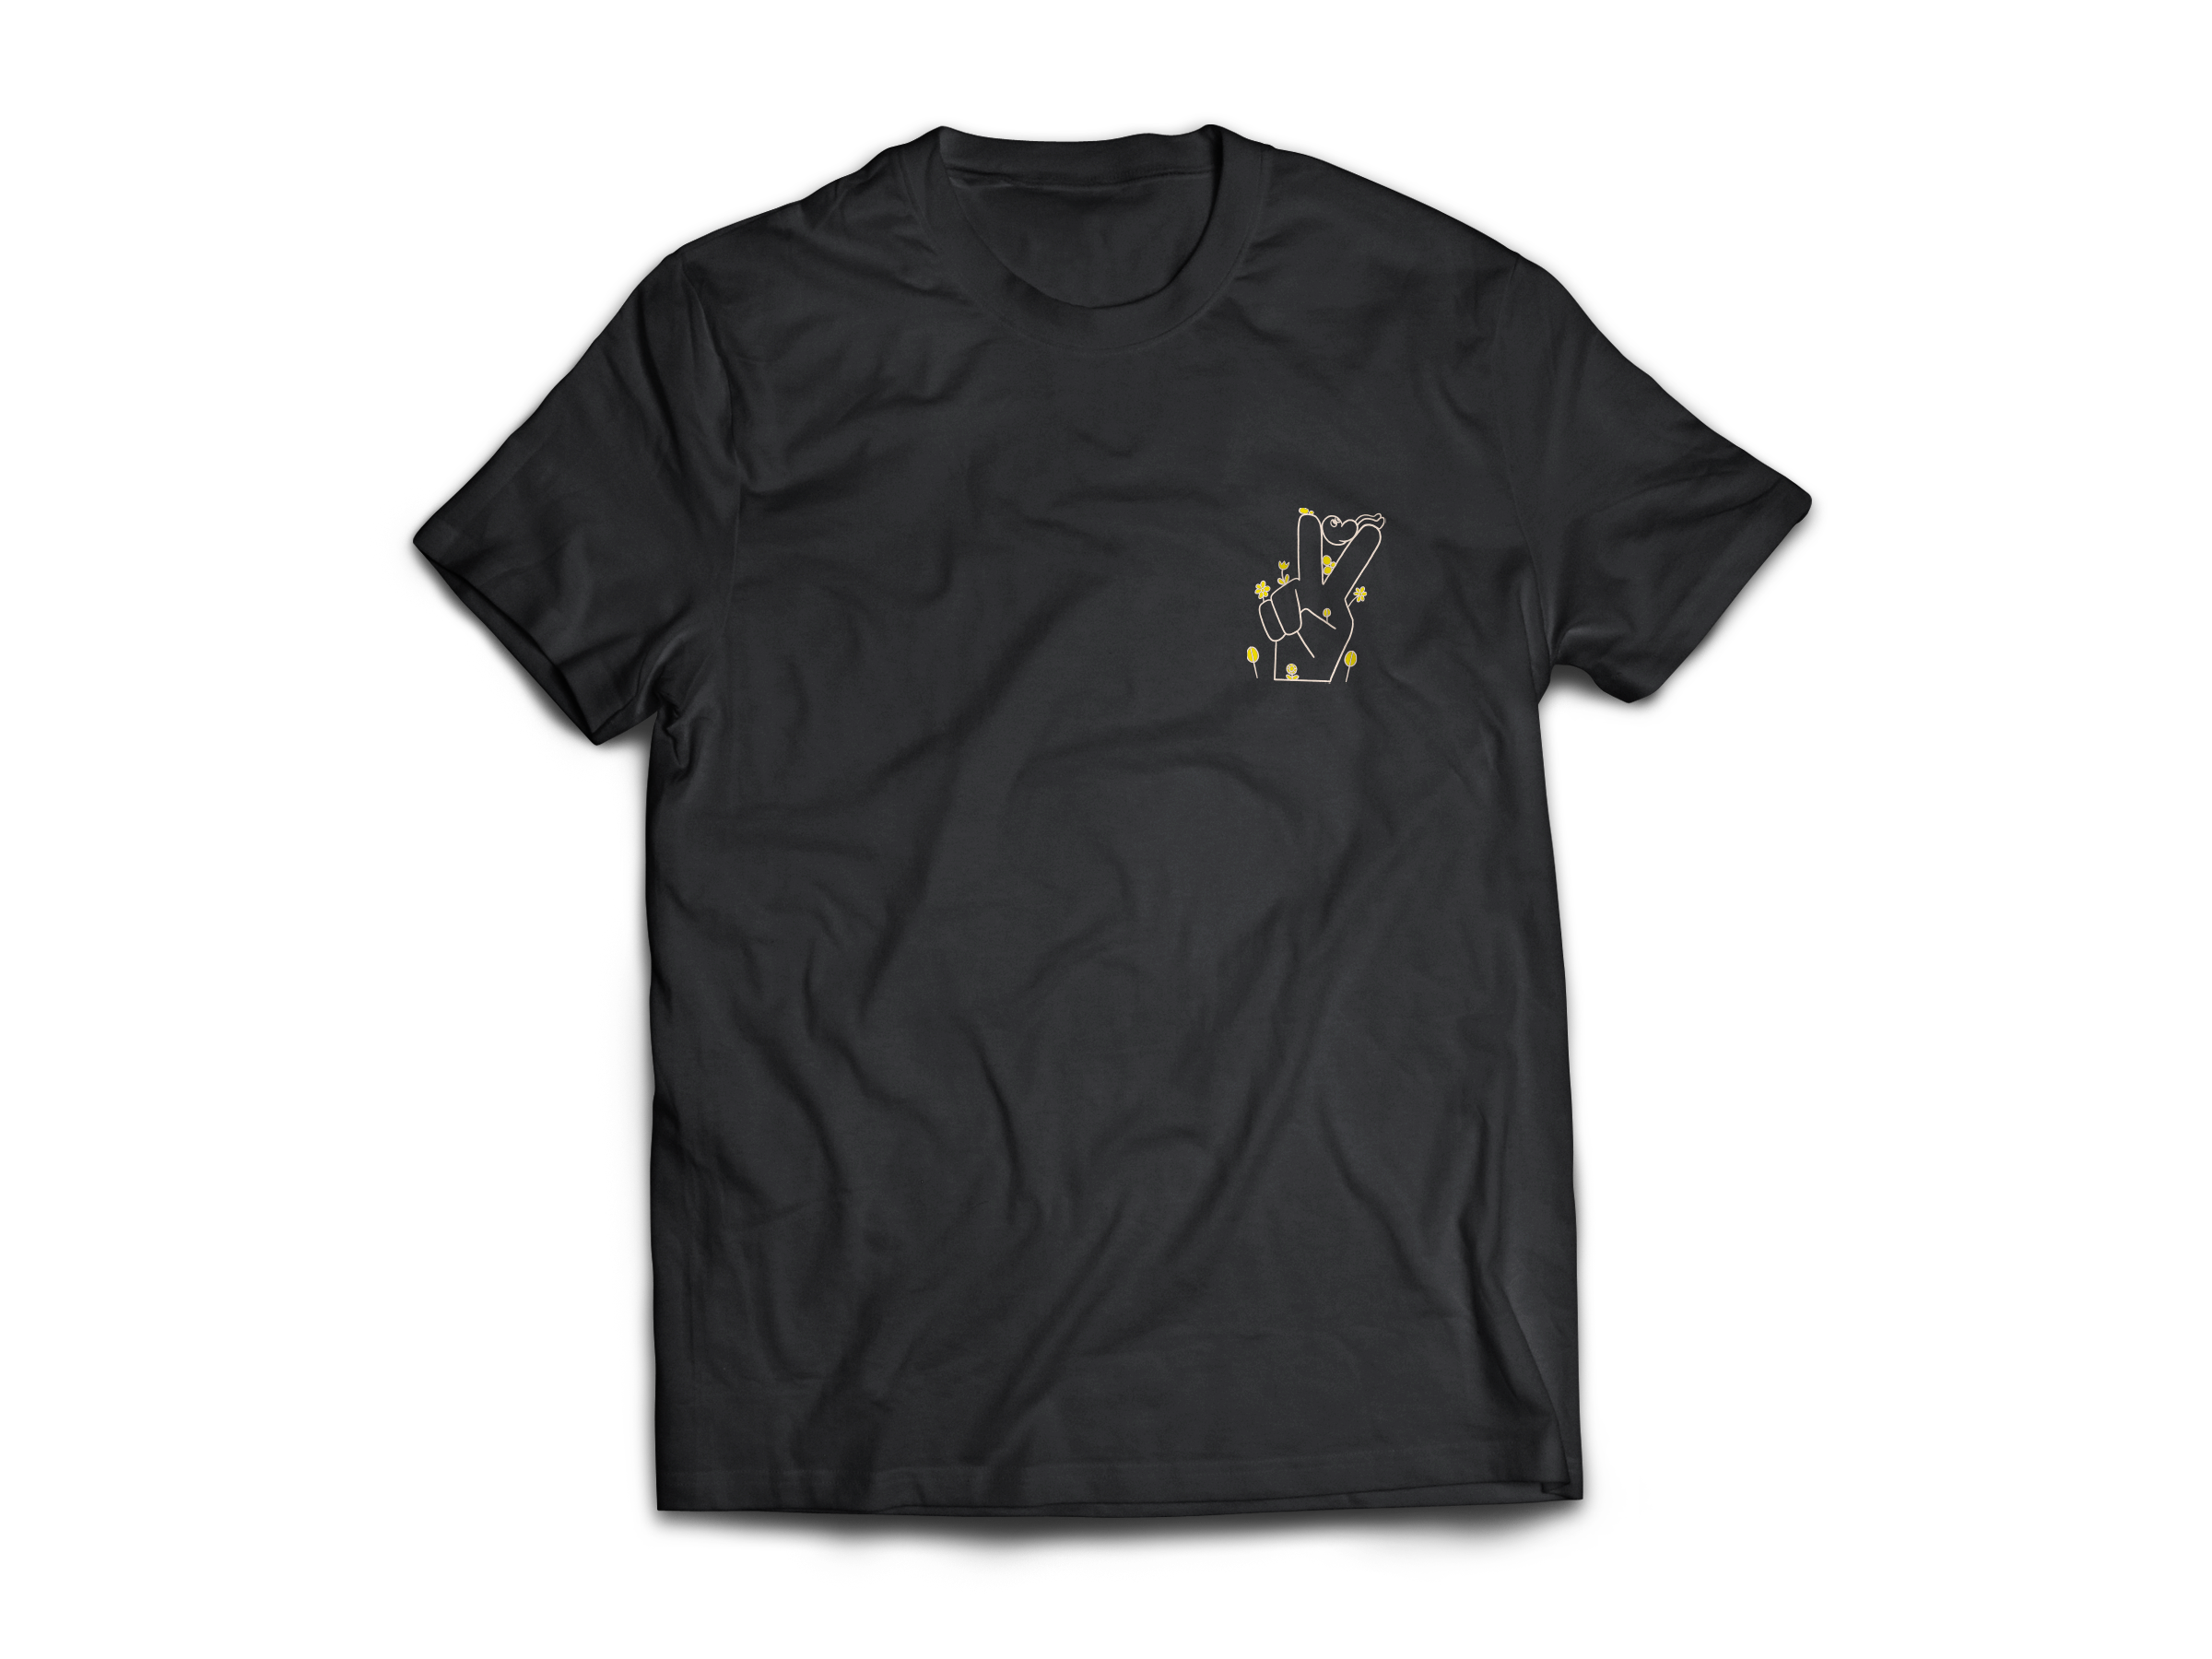 The People's Brew Tee